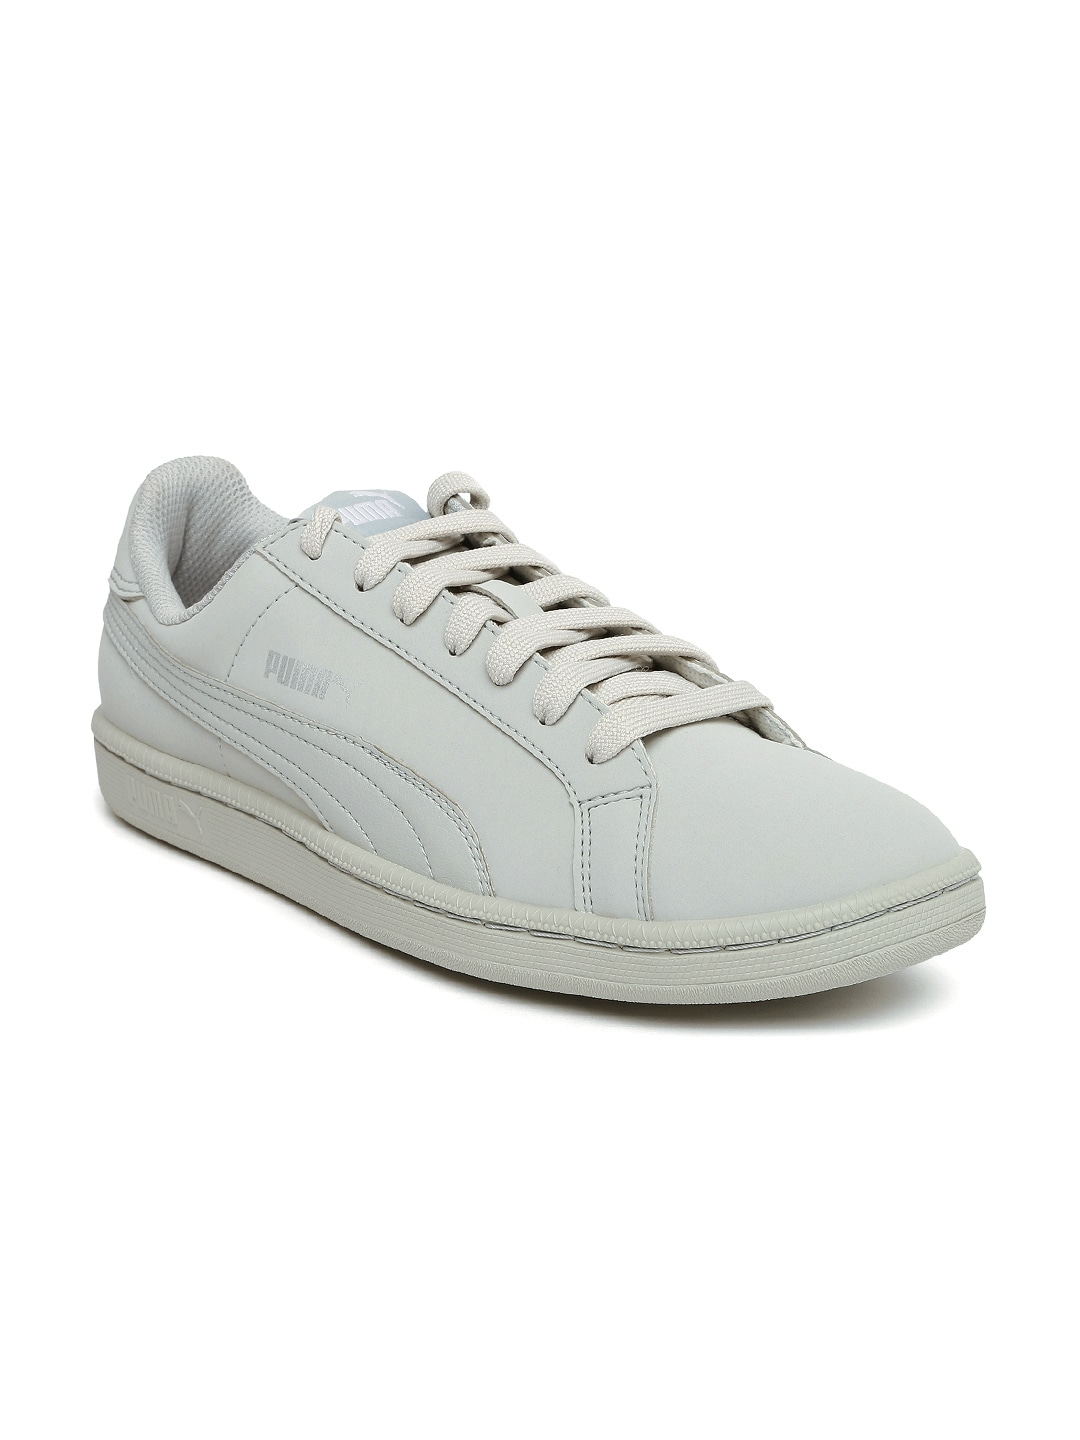 9ee350a9ed601d ... official store puma men smash buck sneakers price in india 29eab 1d032